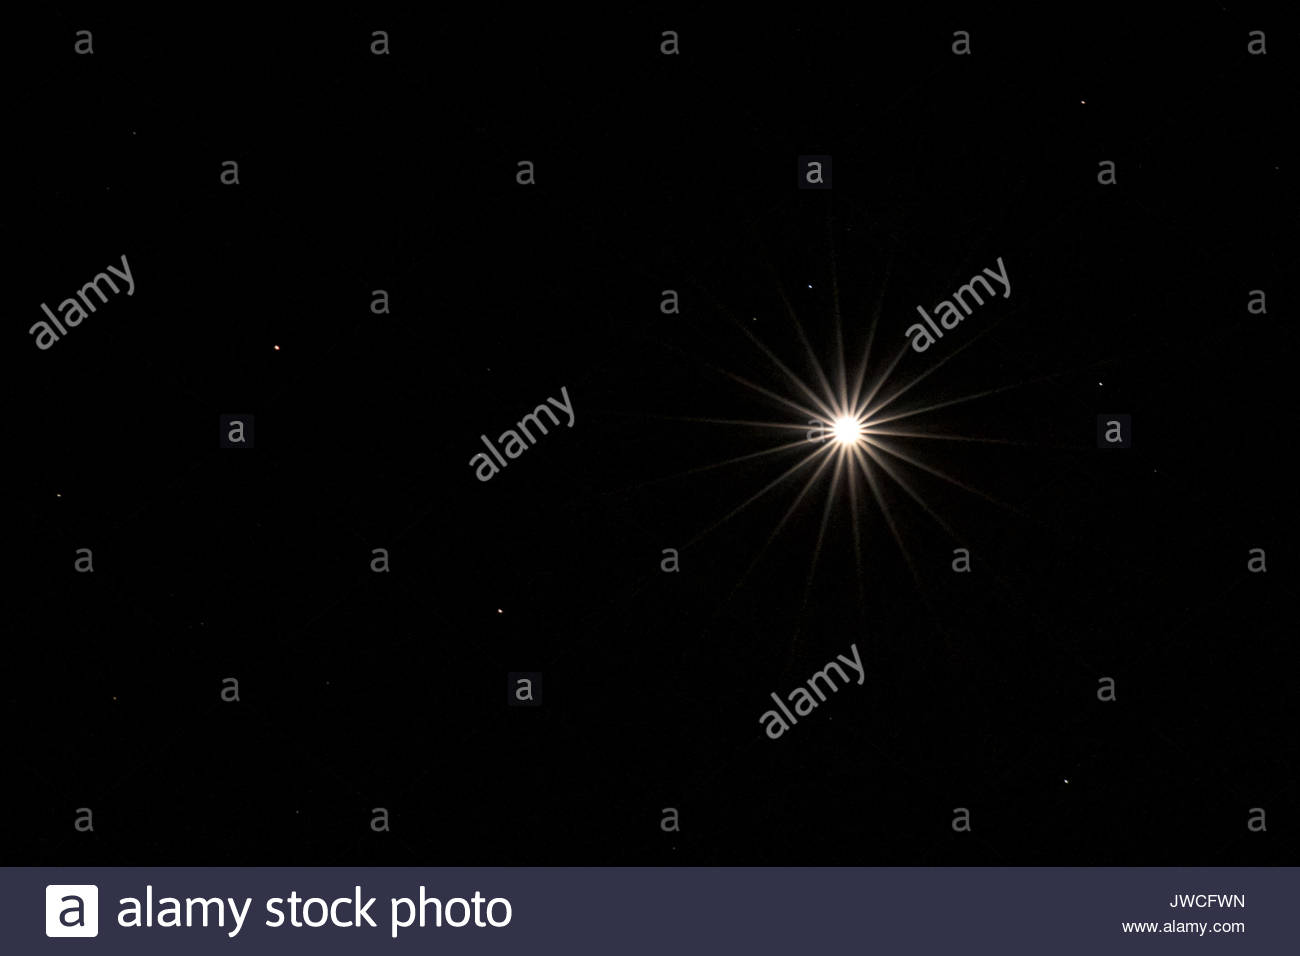 Venus in the night sky with diffraction spikes formed by the lens aperture diaphragm. - Stock Image